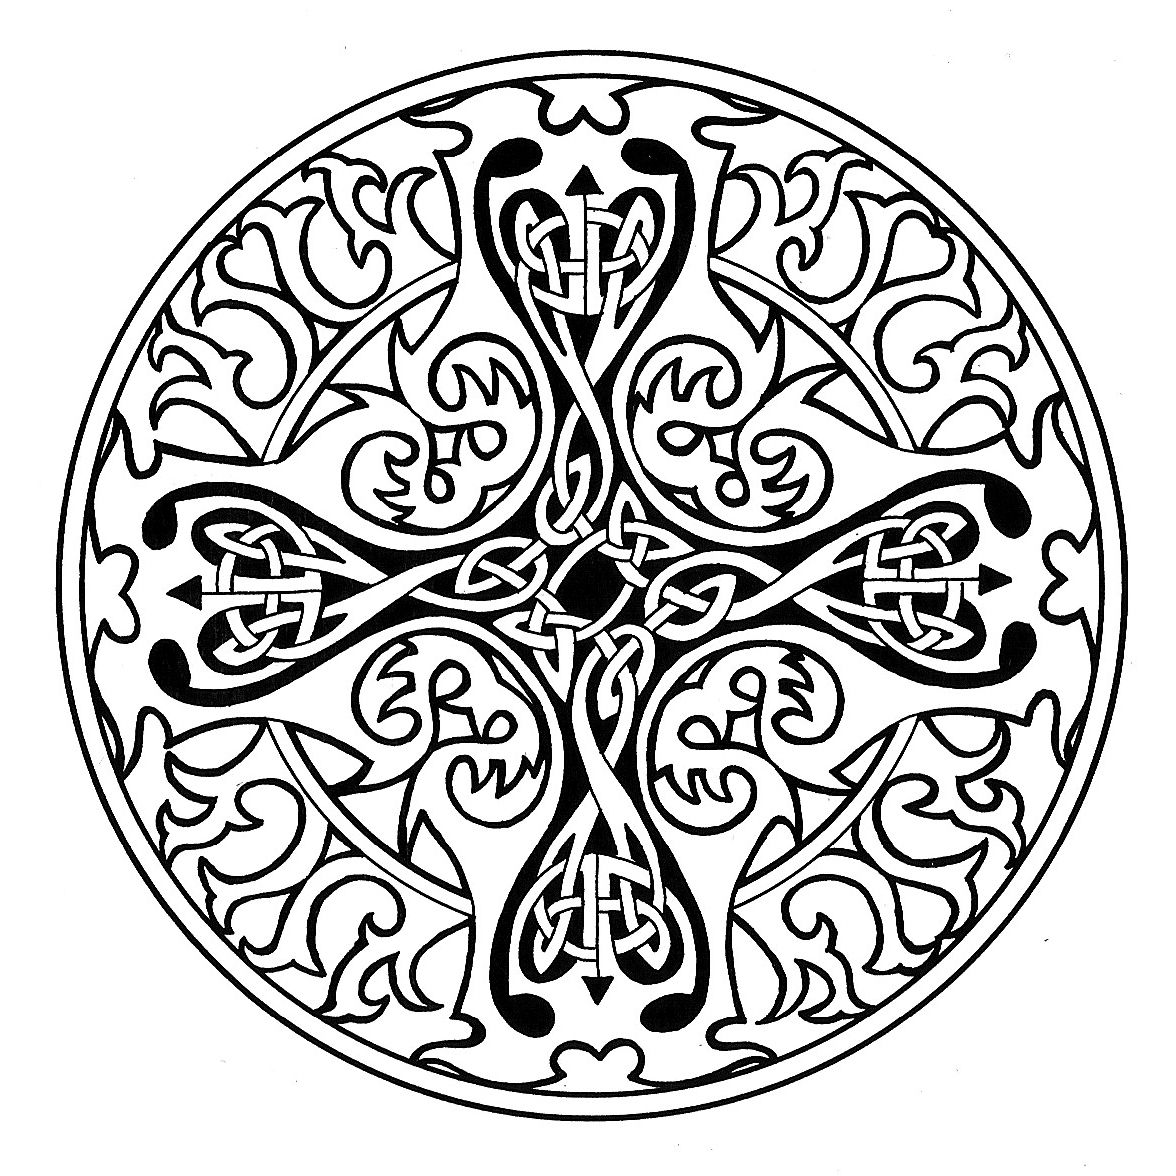 Celtic Cross Mandala (1176x1176) | iColor "|1176|1176|?|4255cf2c1e7cb9fc92bf4493d44abcdc|False|UNLIKELY|0.3323136270046234